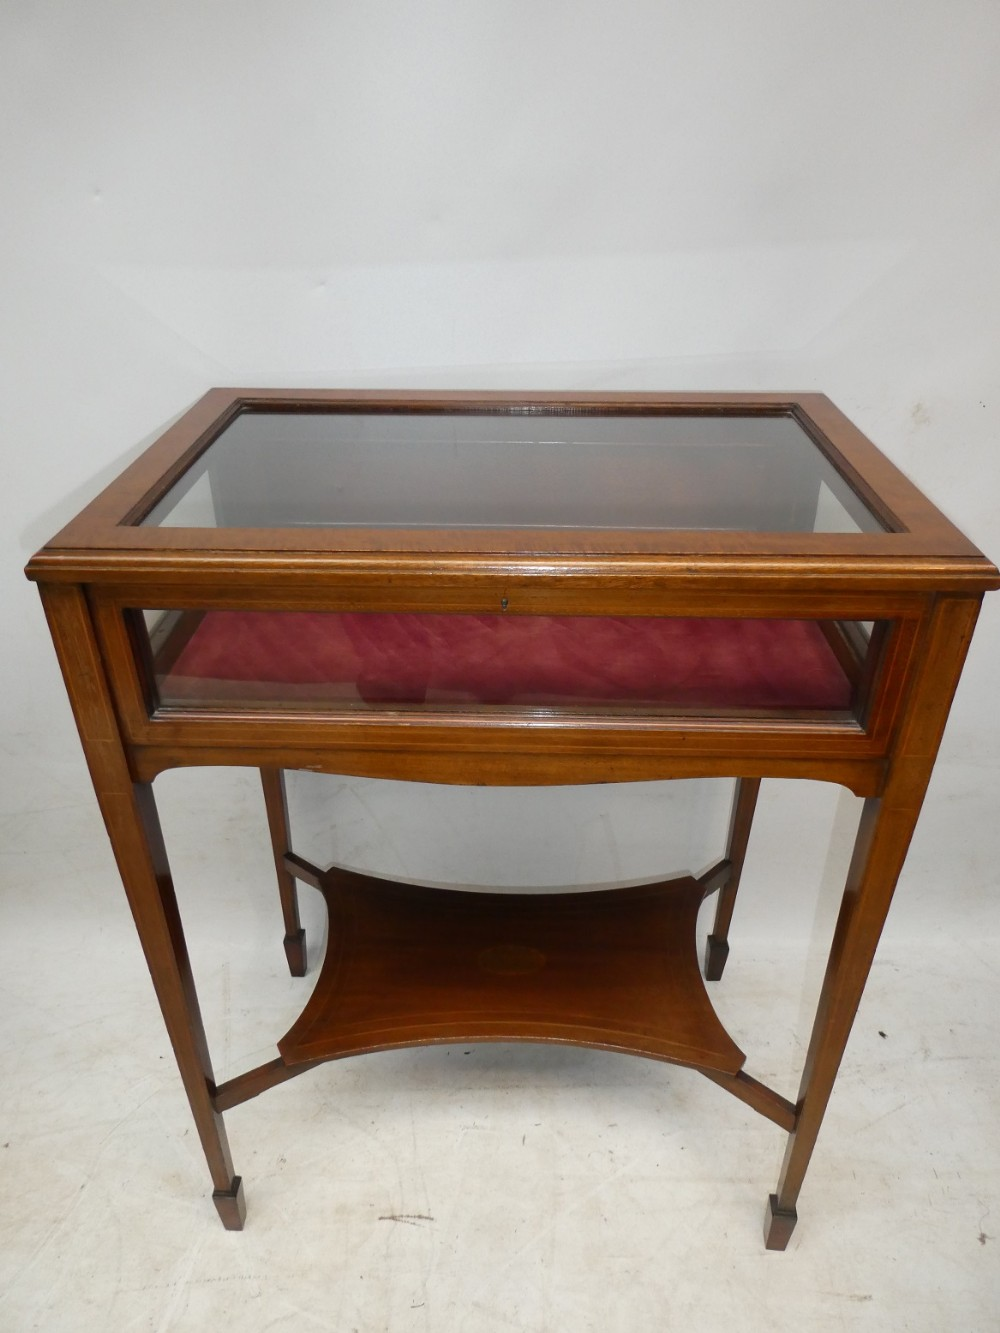 19th century bijouterie display table